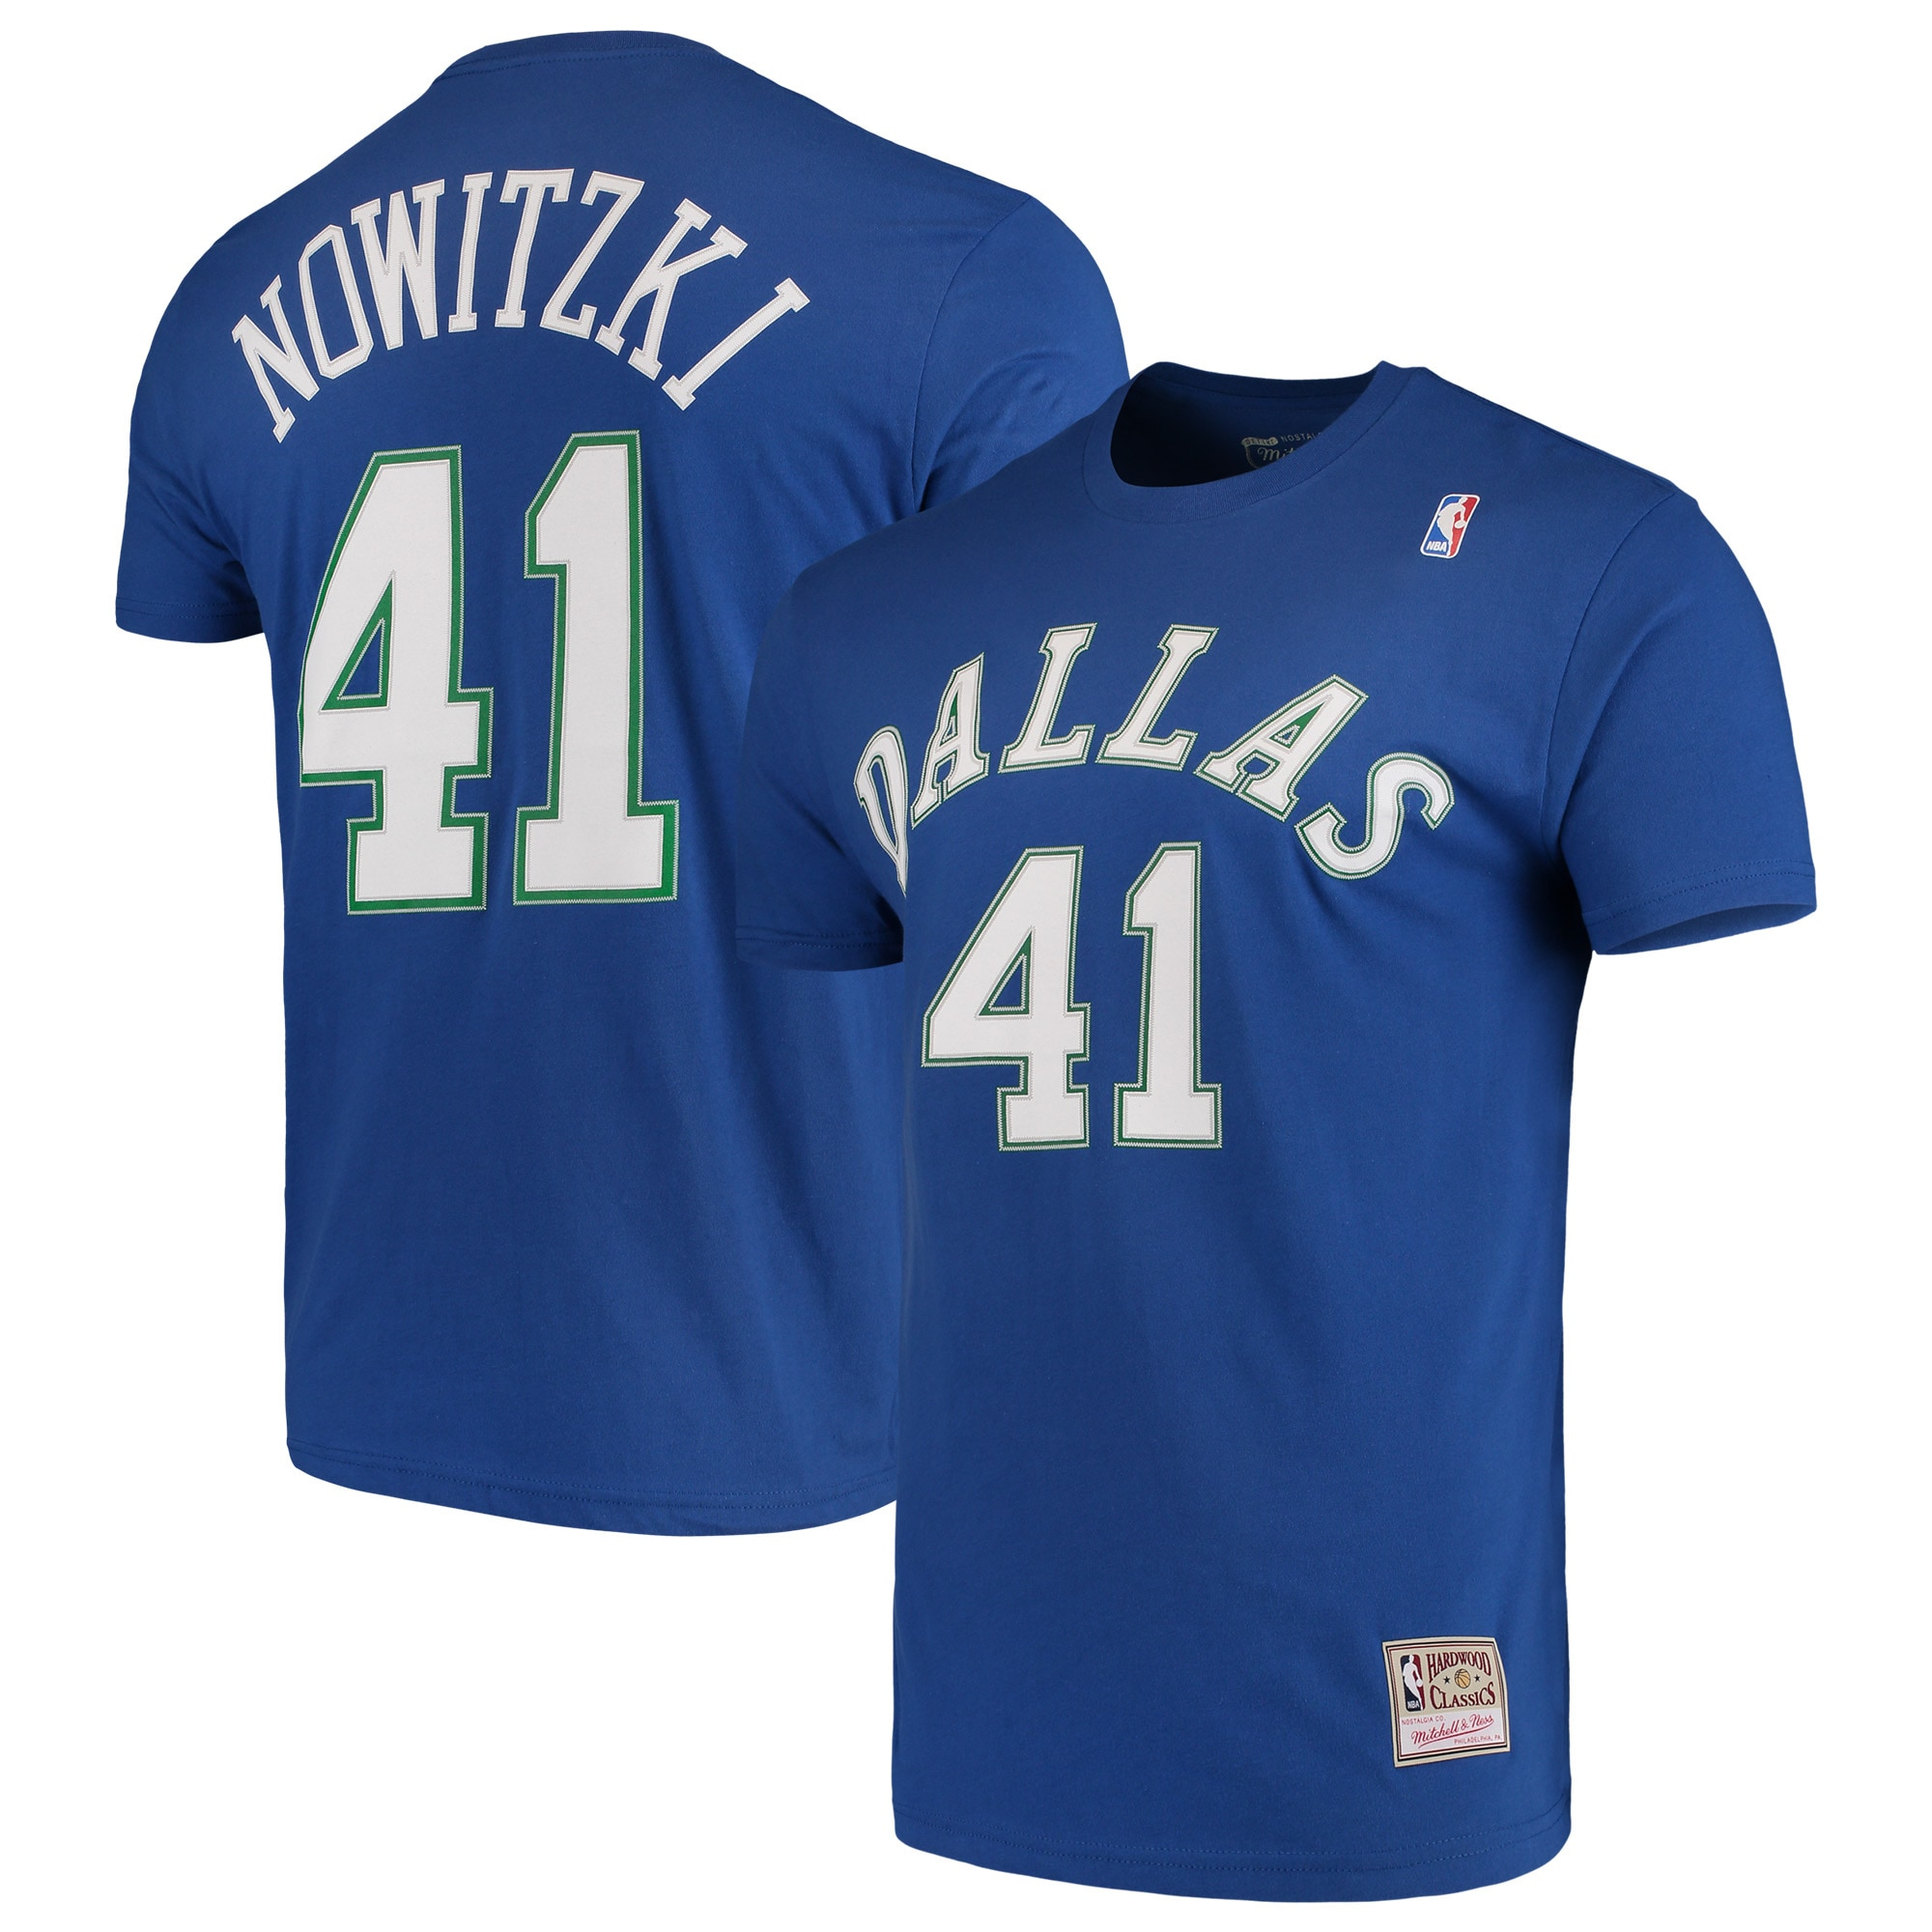 Dirk Nowitzki Dallas Mavericks Mitchell & Ness Hardwood Classics Team Name & Number T-Shirt - Blue